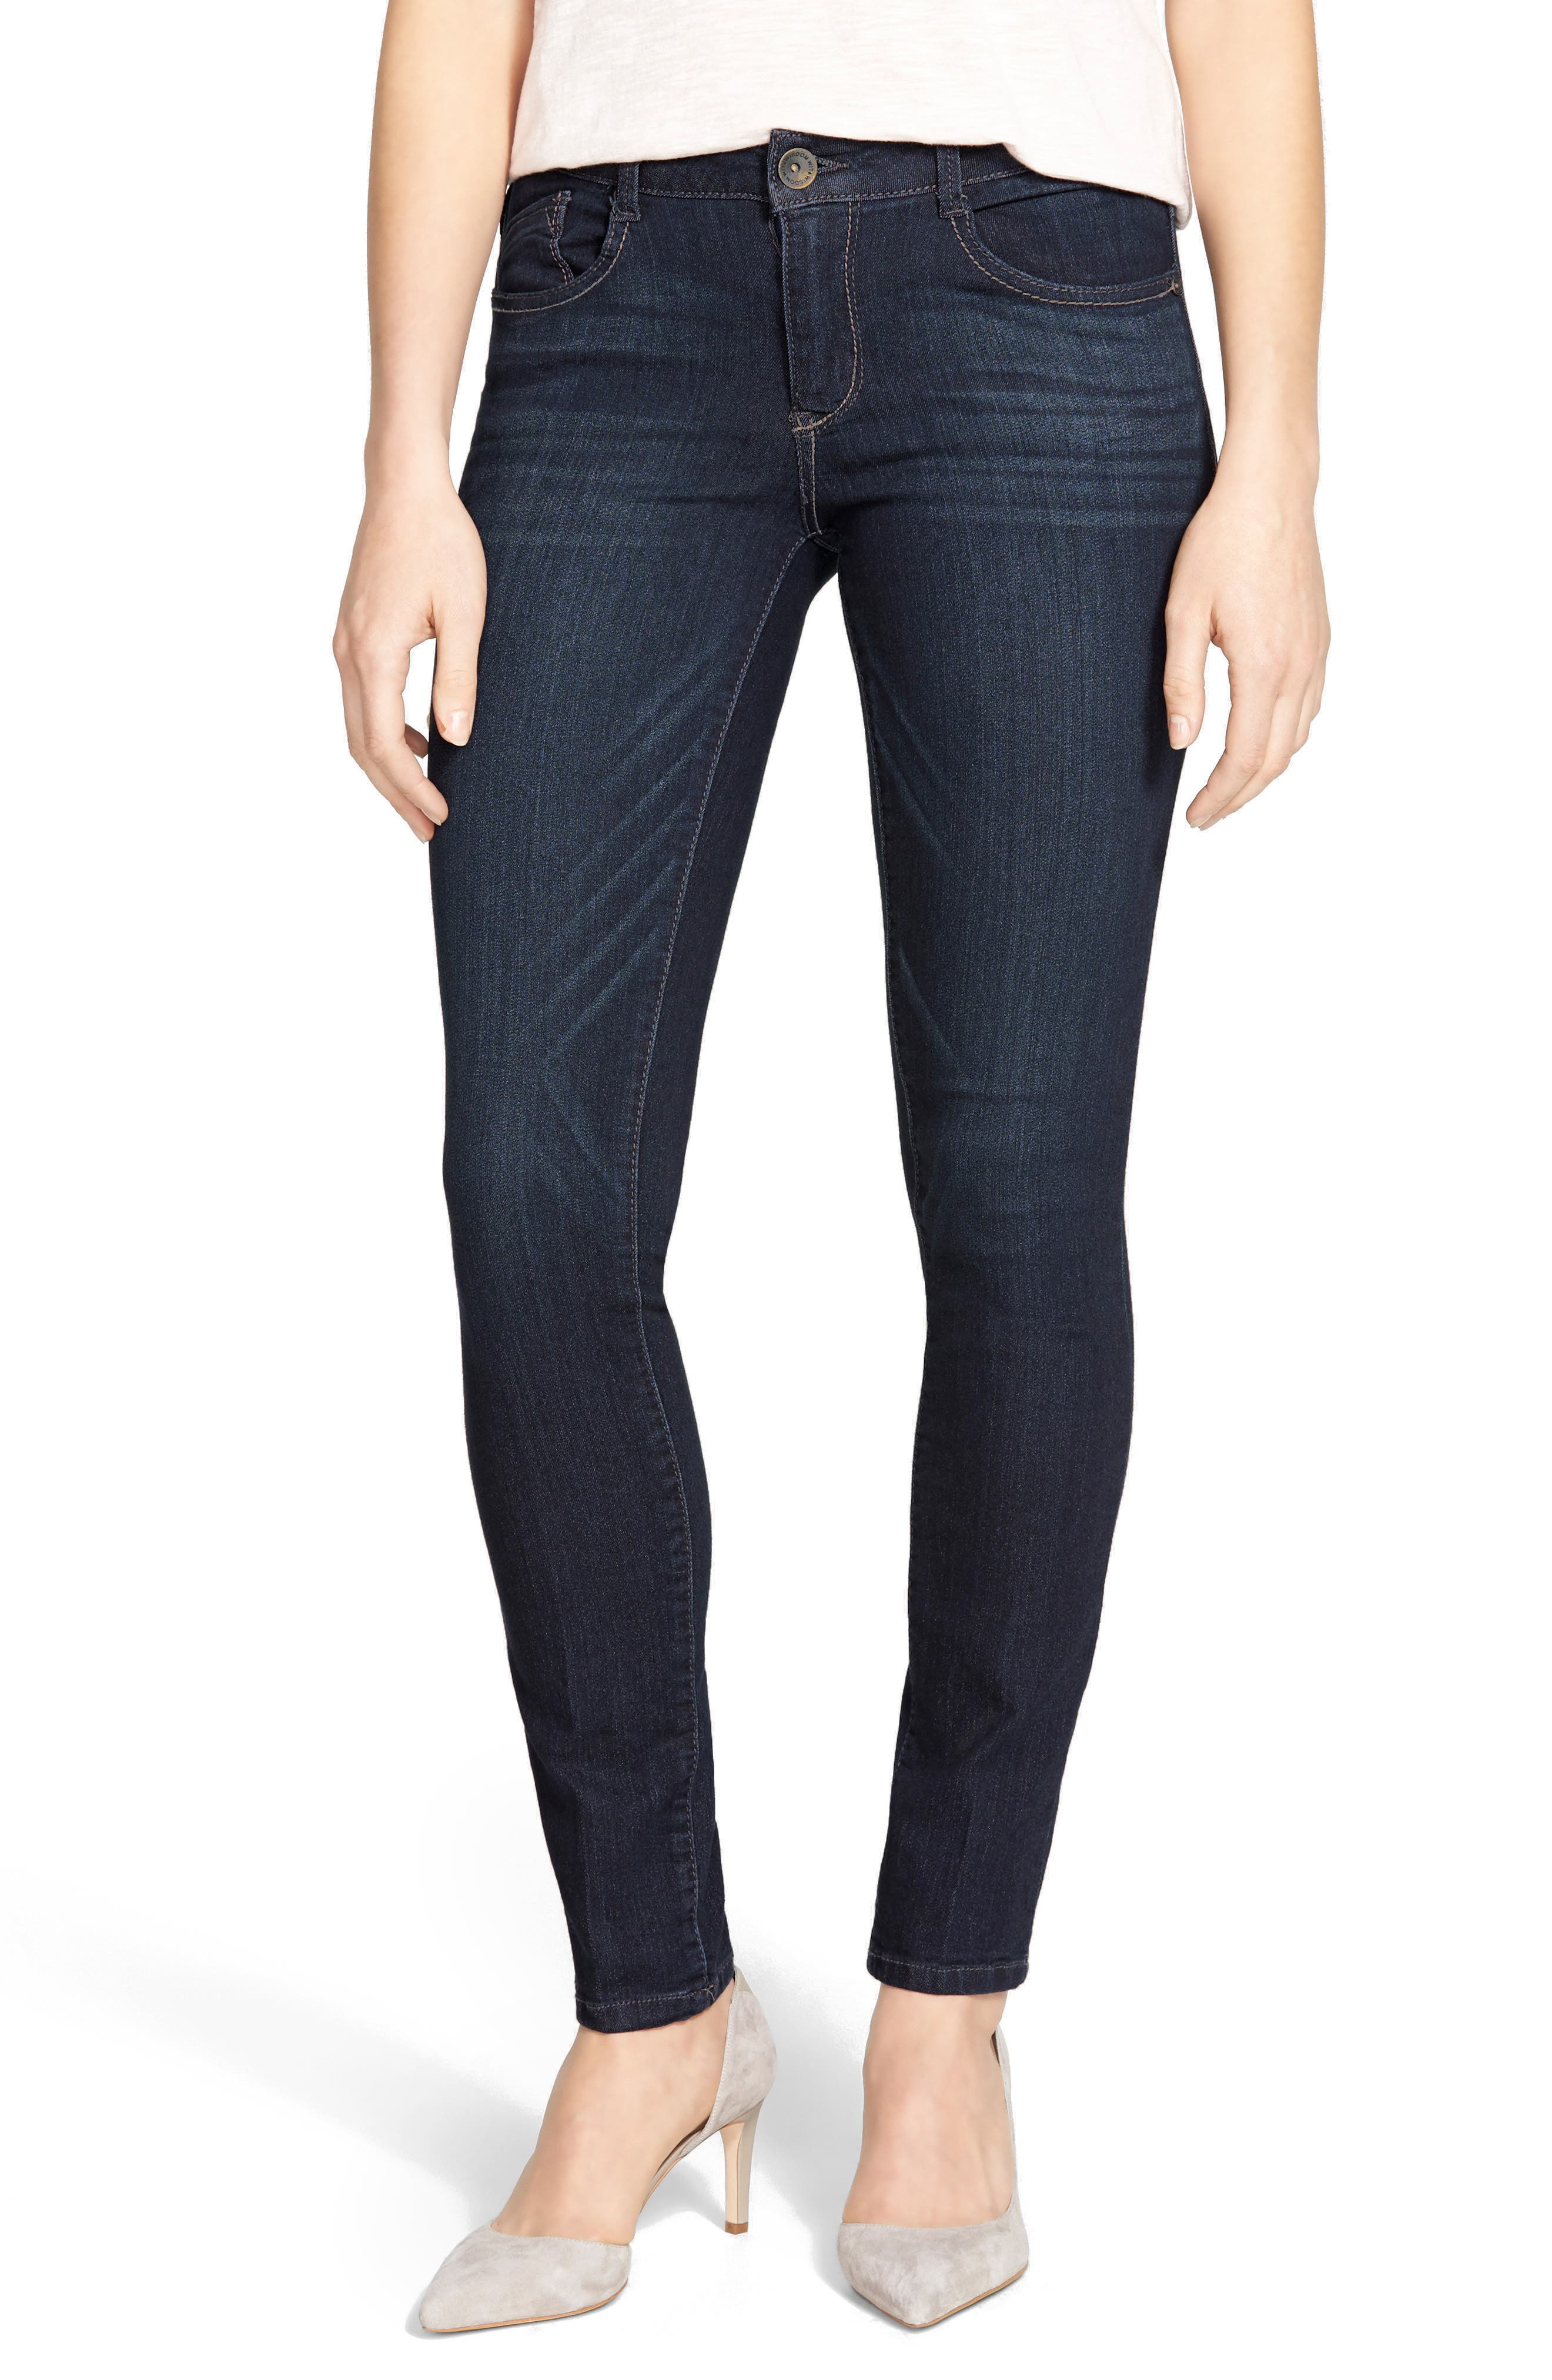 WIT & WISDOM, Super Smooth Stretch Denim Skinny Jeans, Main thumbnail 1, color, DARK NAVY